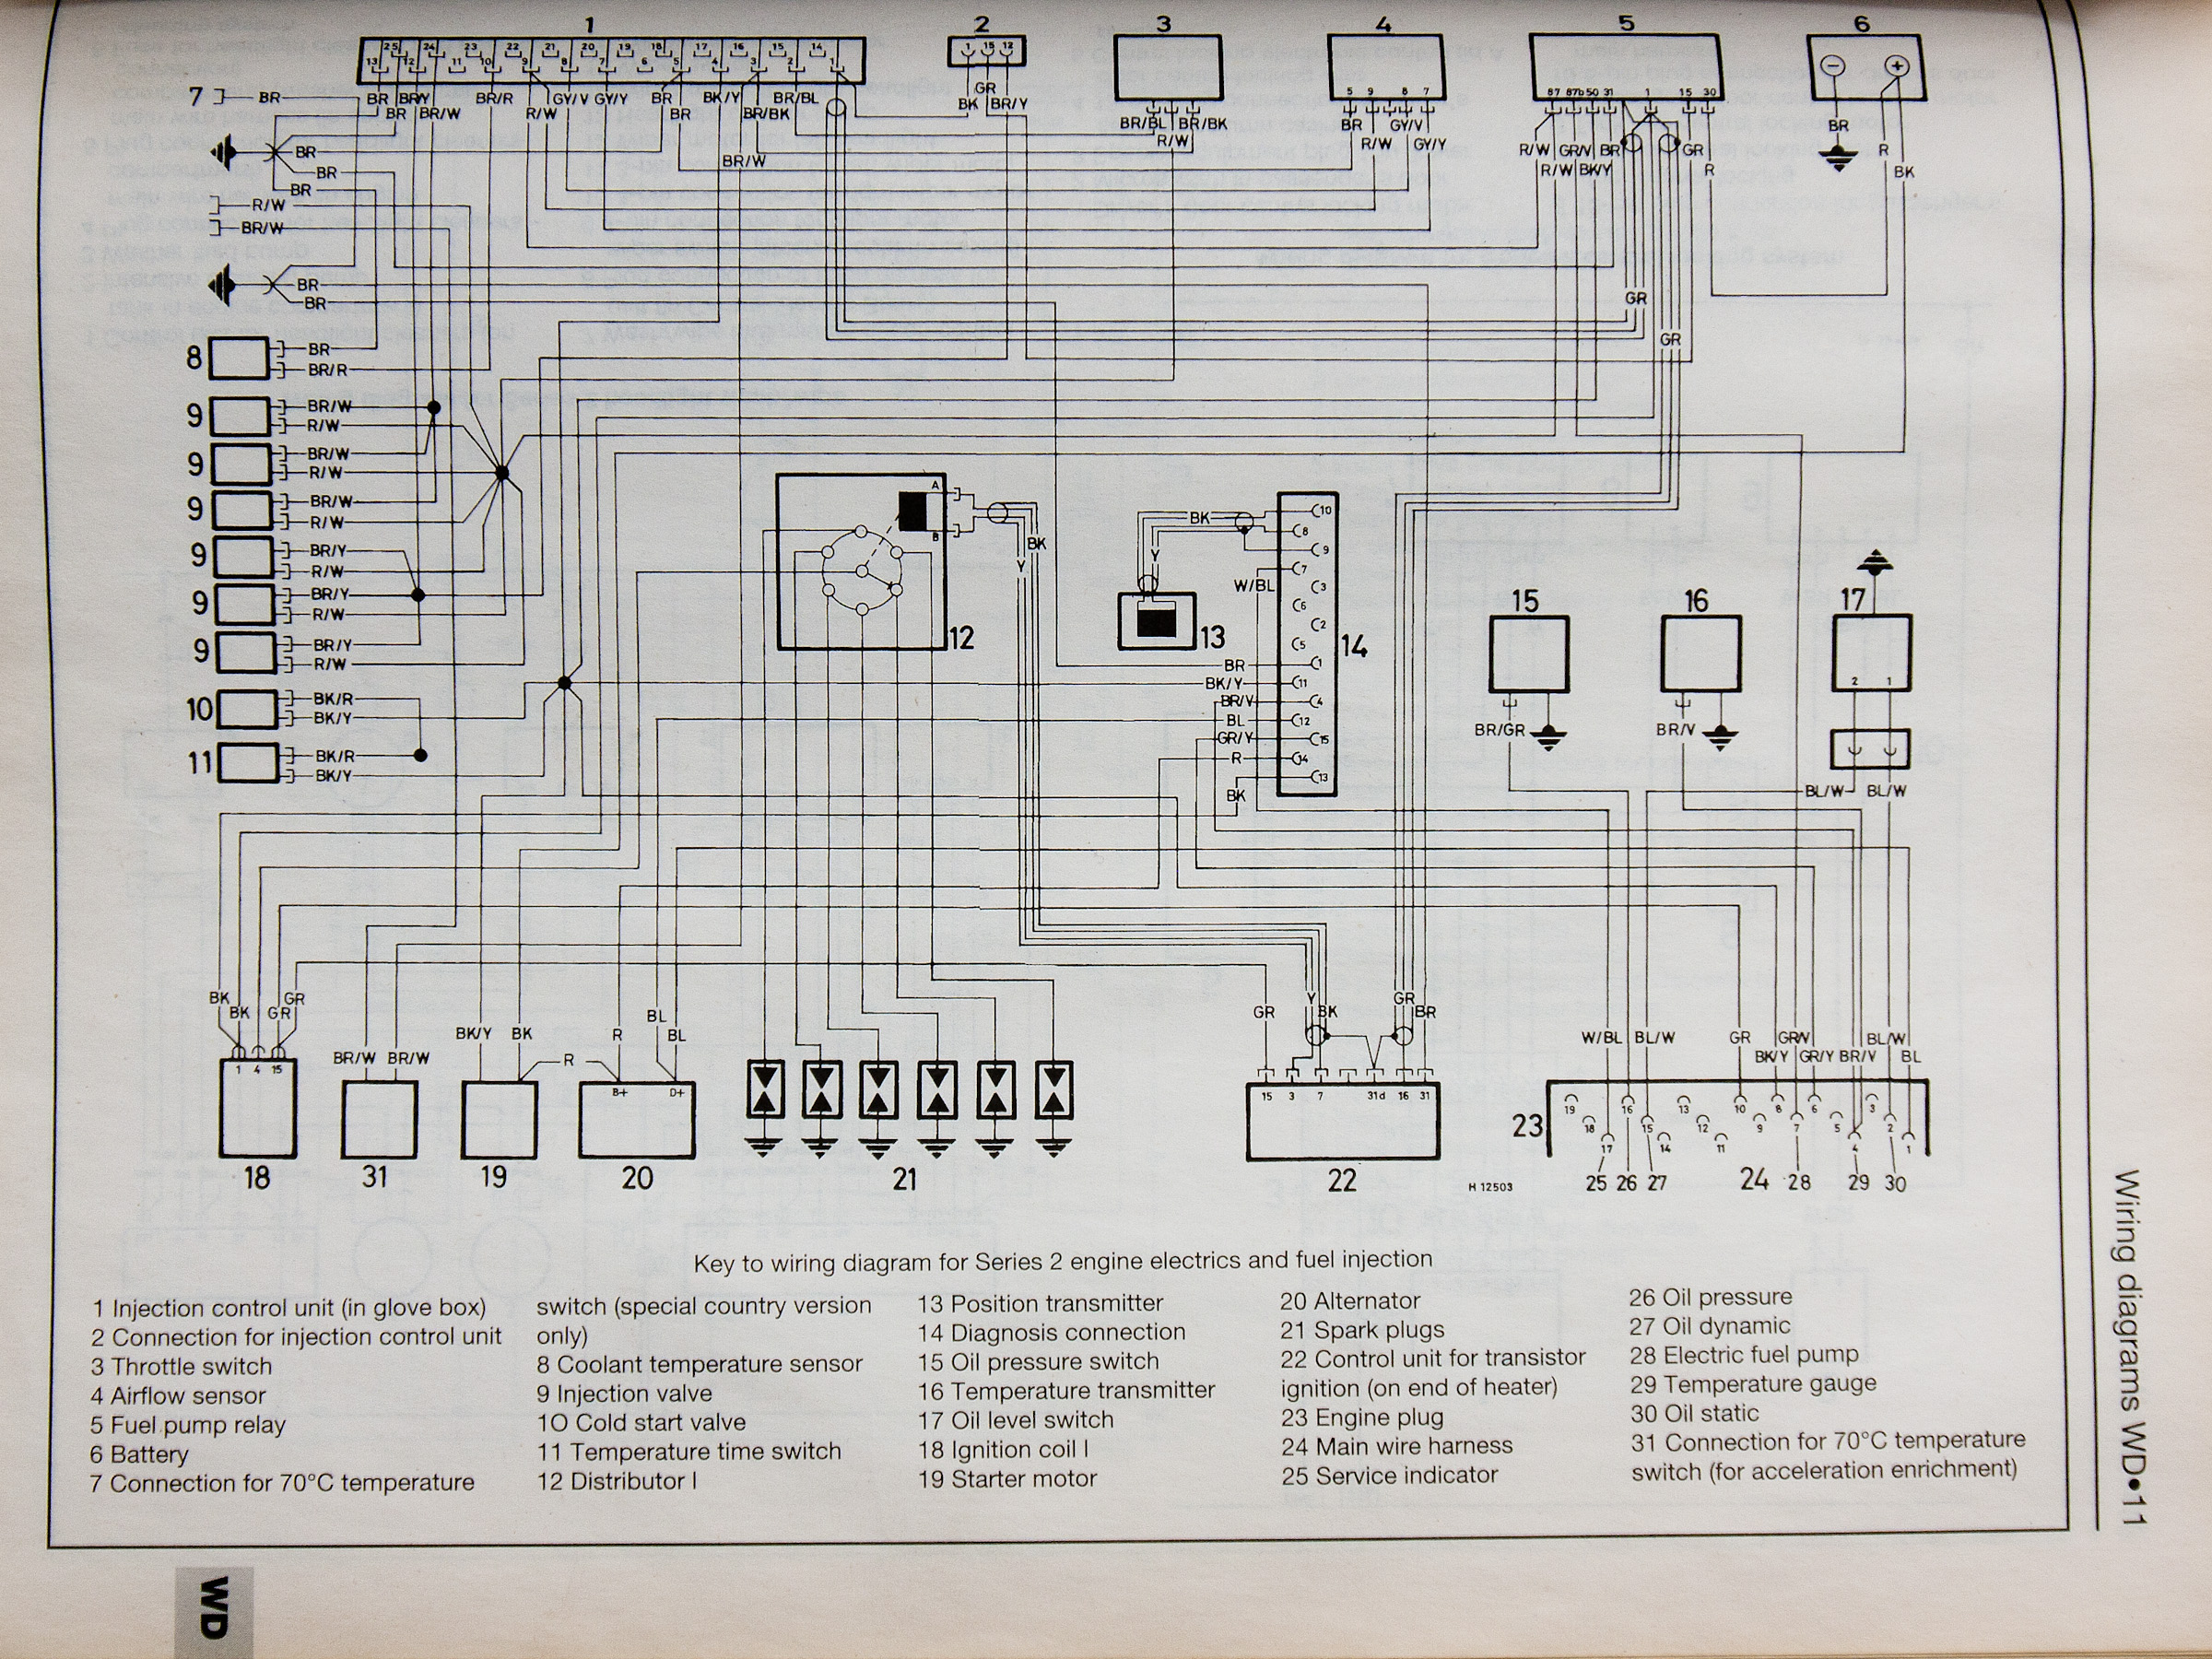 Technical Bmw E30 Wiring Diagram Bestbreweries co